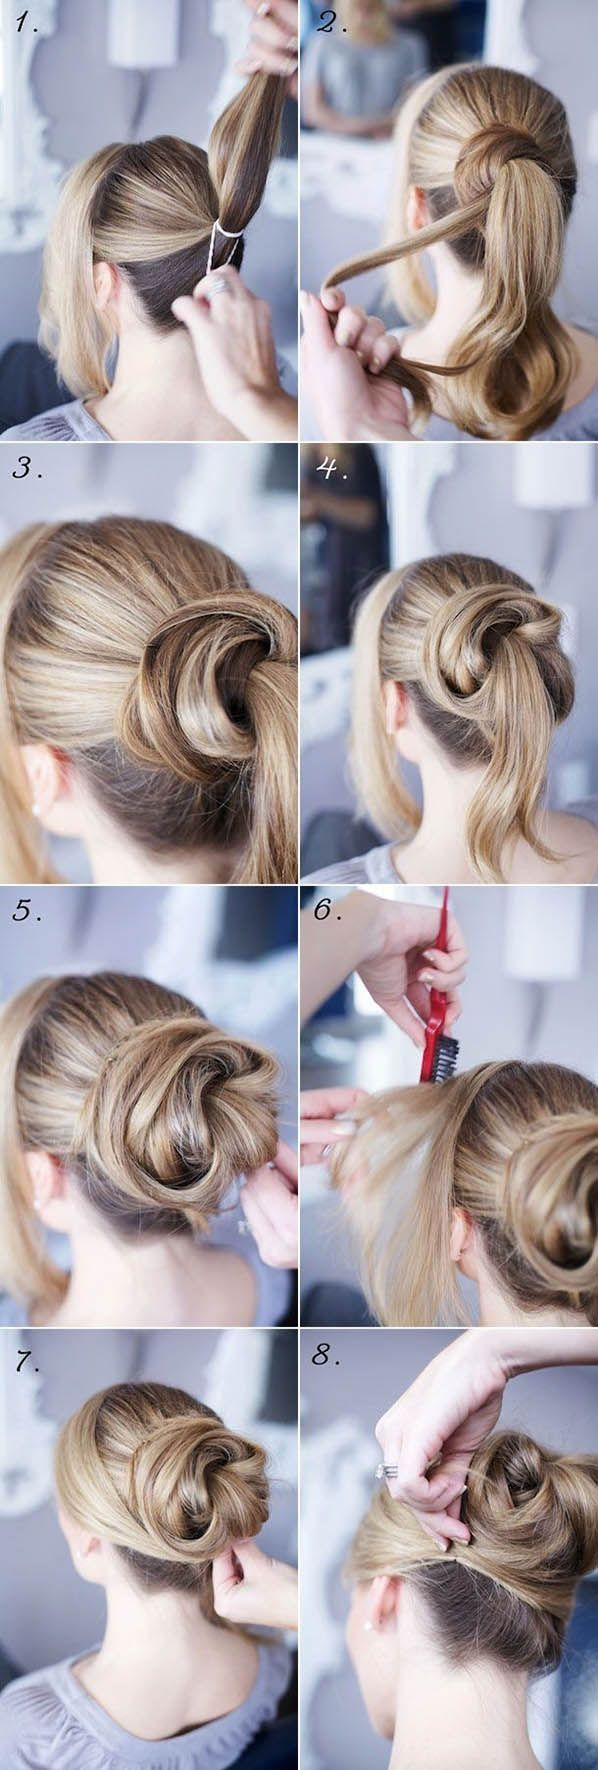 DIY Bun Hairstyle Pictures, Photos, and Images for Facebook, Tumblr, Pinterest, and Twitter